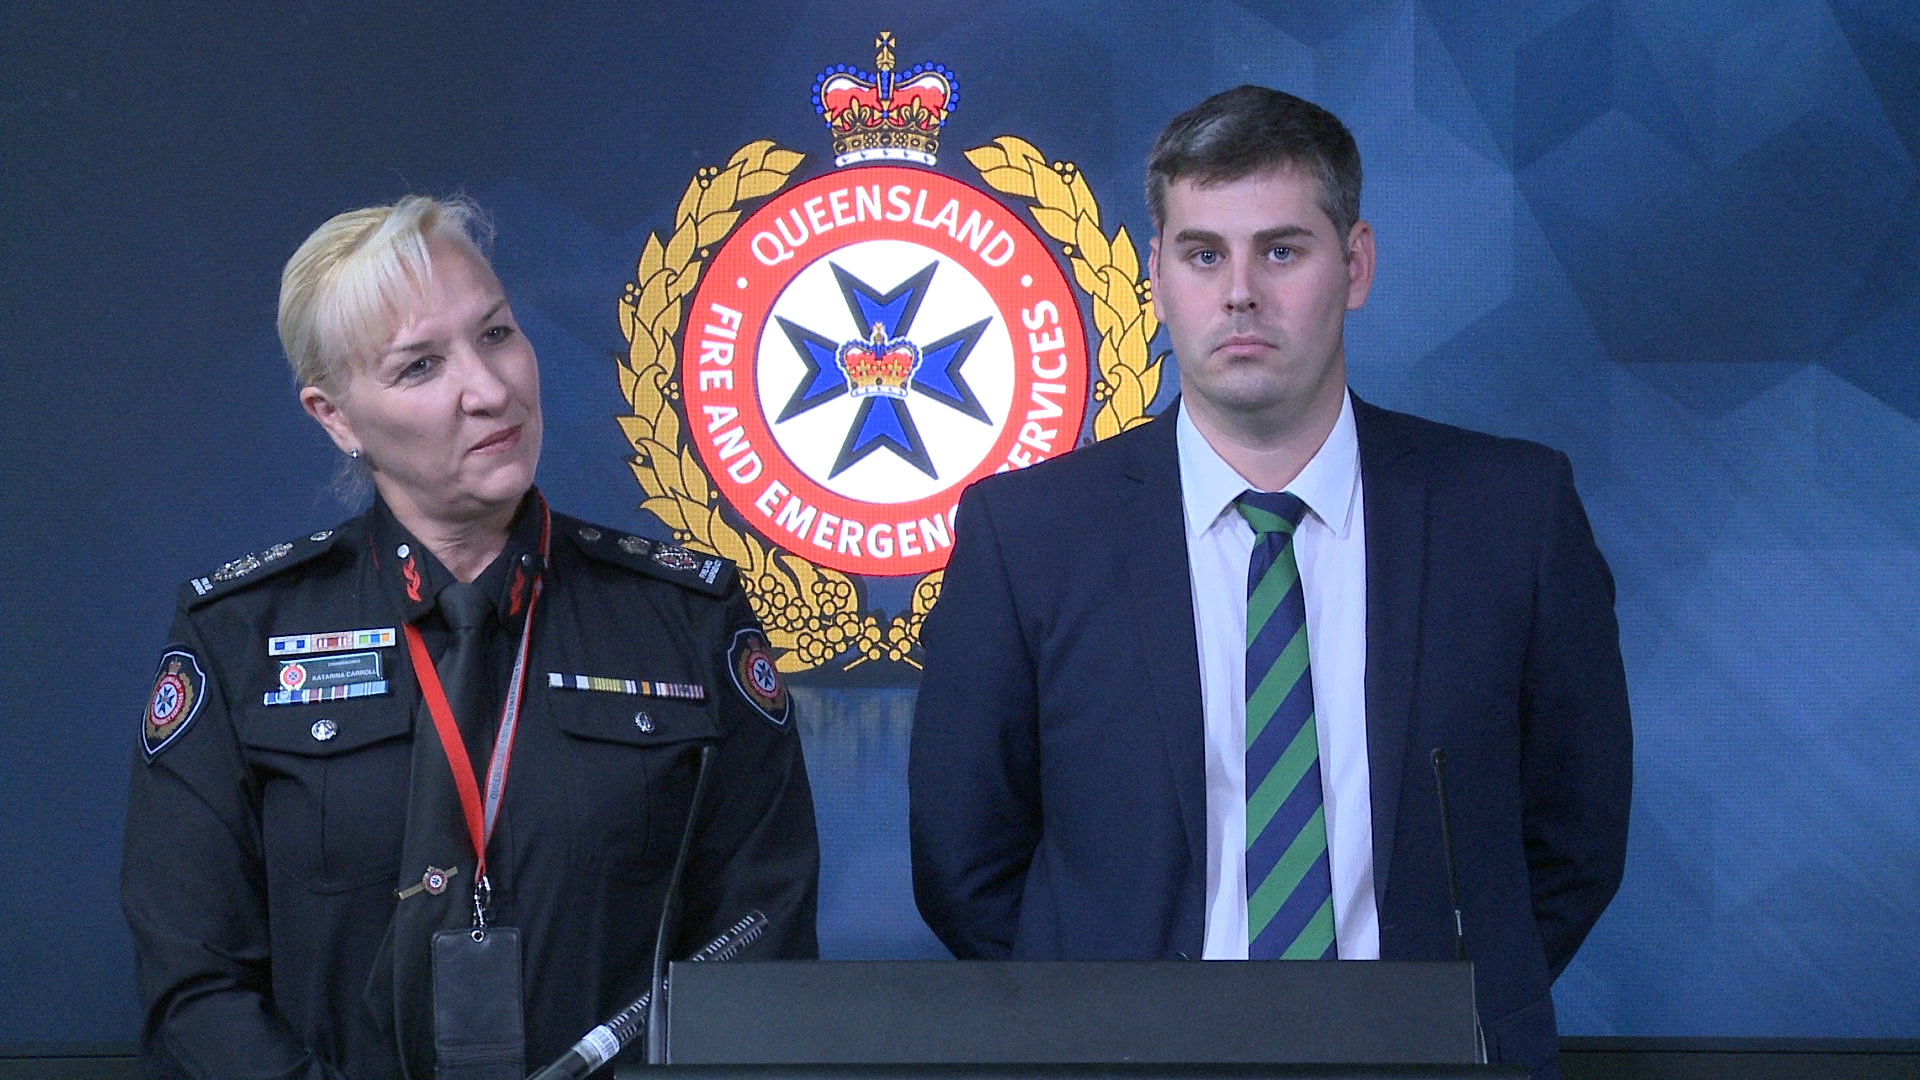 Police, Fire and Emergency Services Minister Mark Ryan and Queensland Fire and Emergency Services (QFES) Commissioner Katarina Carroll remind Queenslanders to stay safe at the 'If it's flooded, forget it', launch.